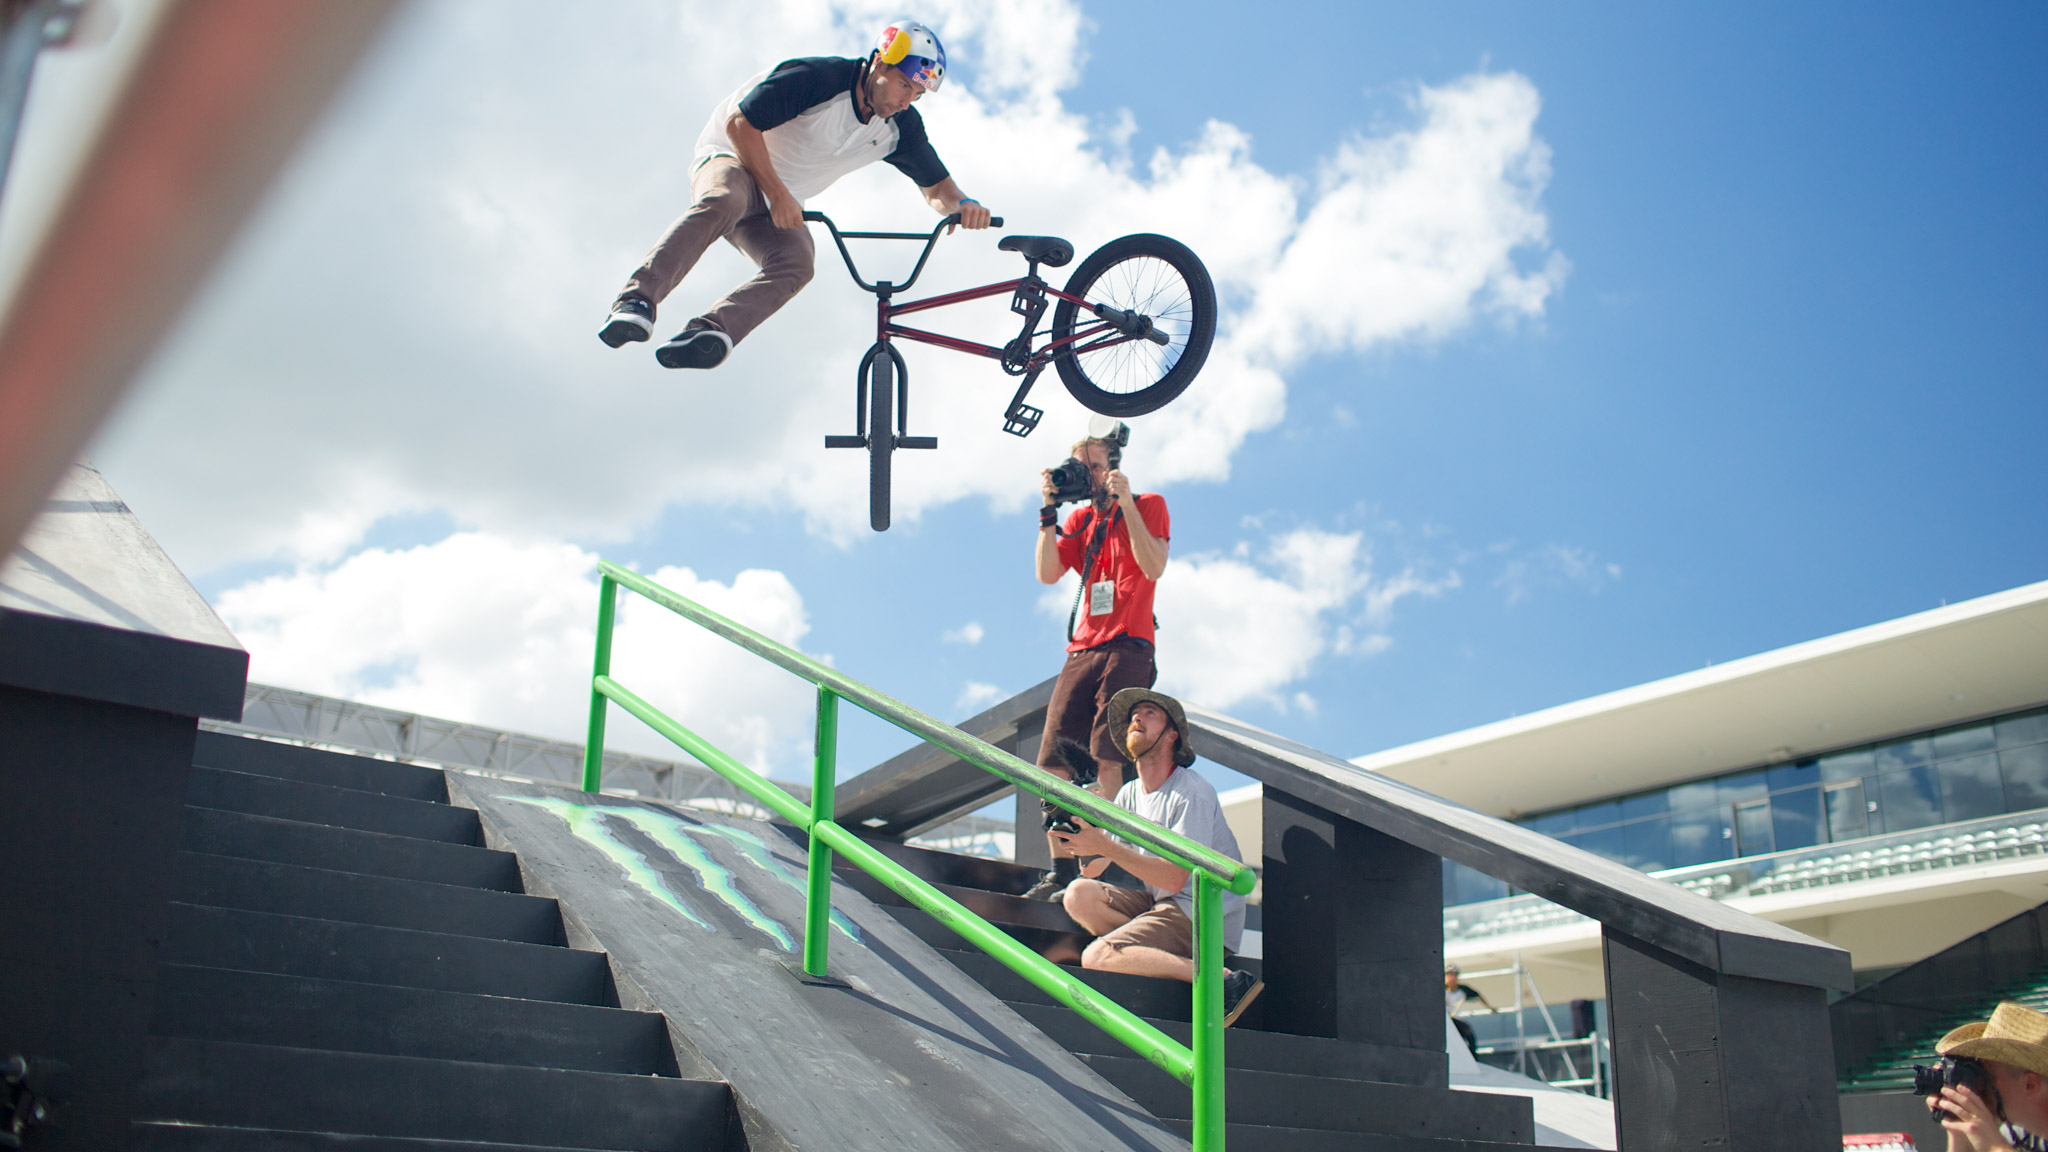 BMX Street, Saturday at 3 p.m.